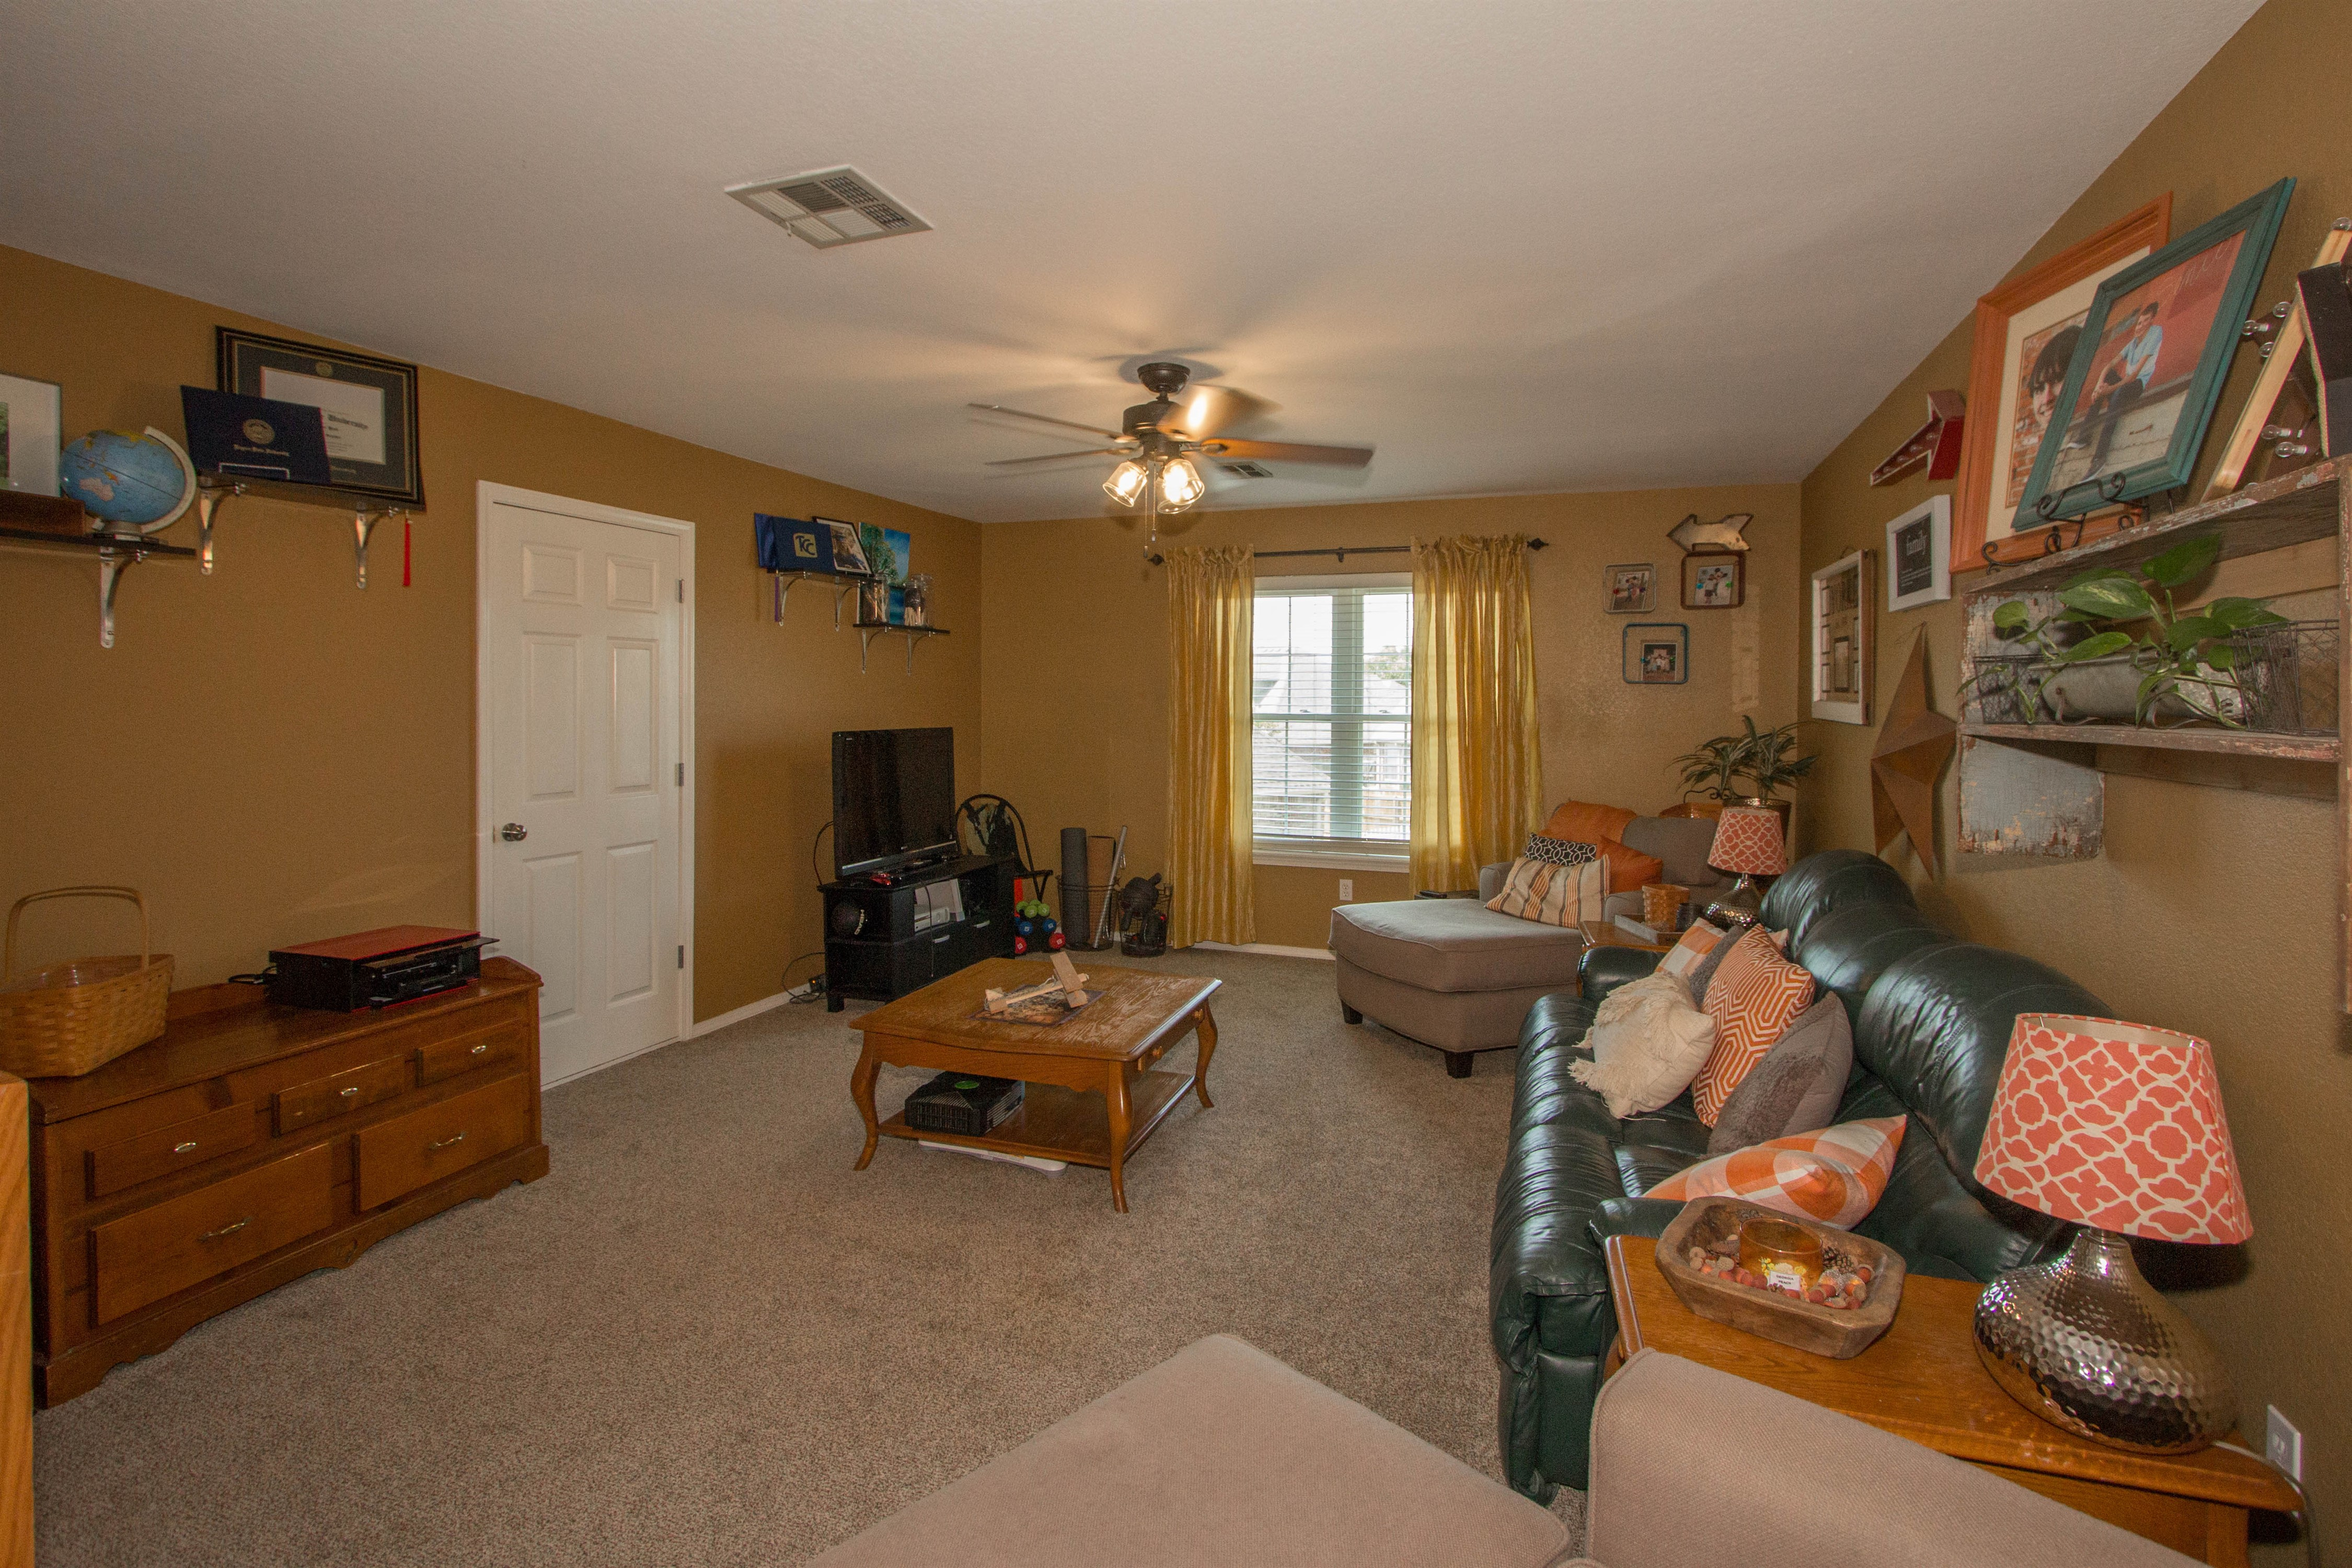 4712 S 176th Place Property Photo 28